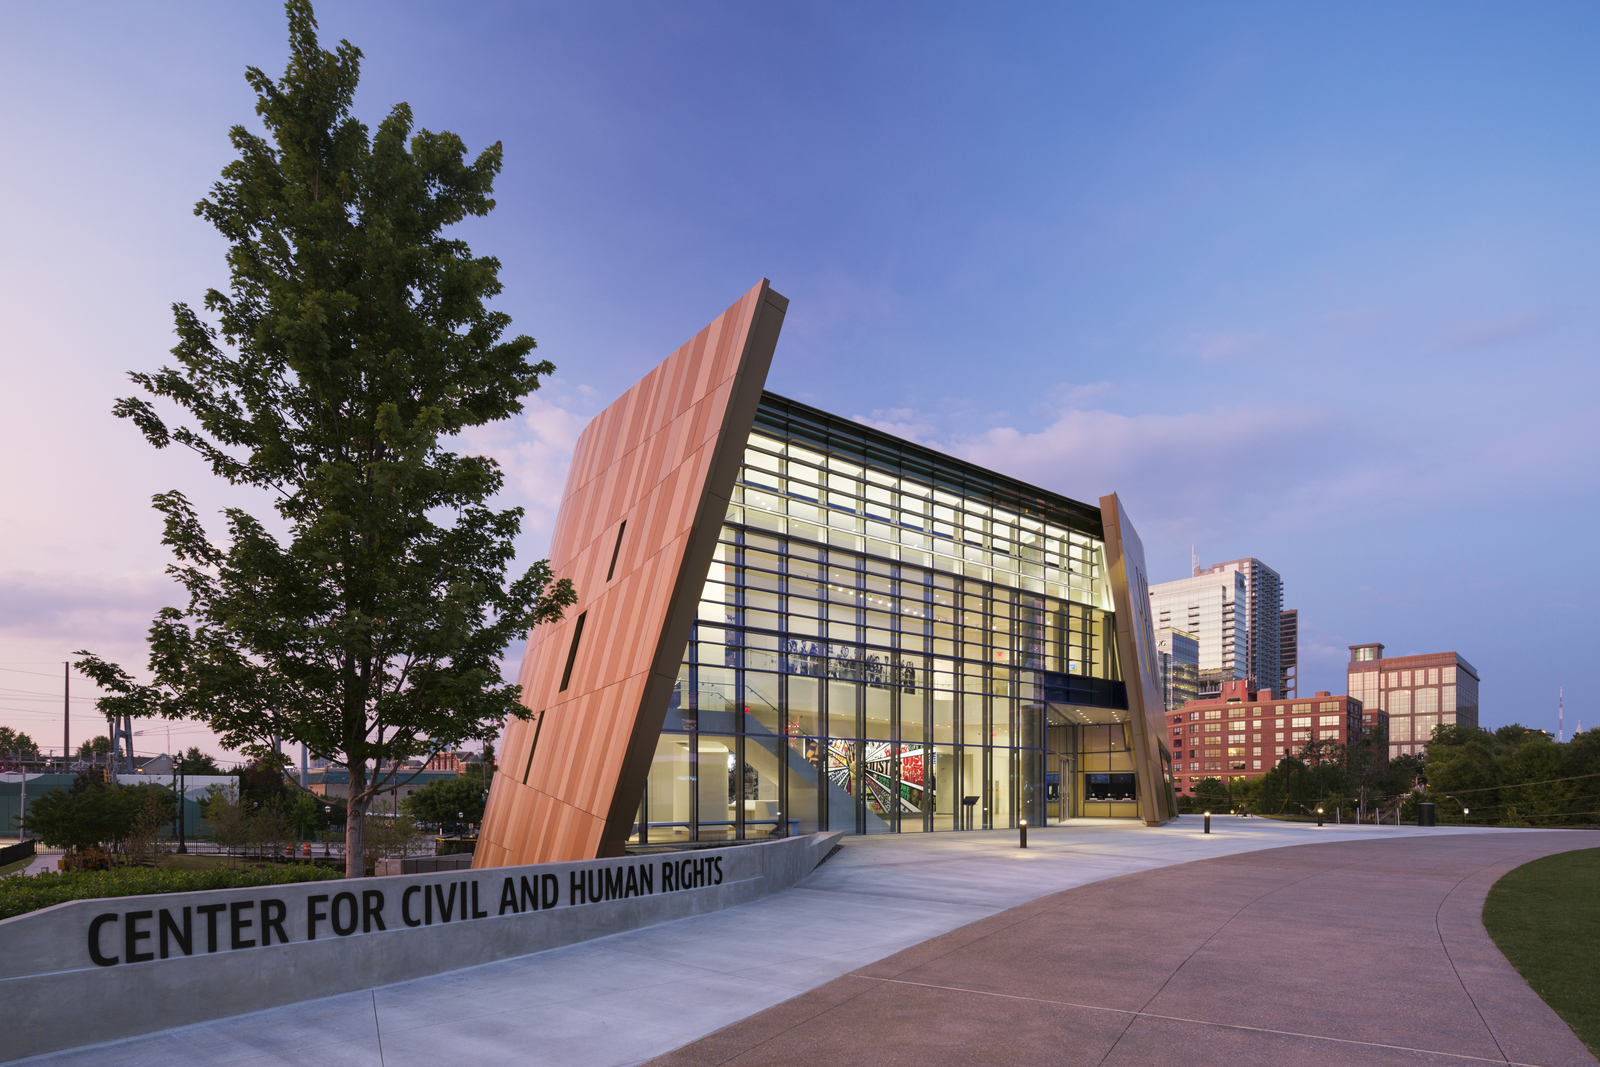 the LEED Gold National Center for Civil and Human Rights